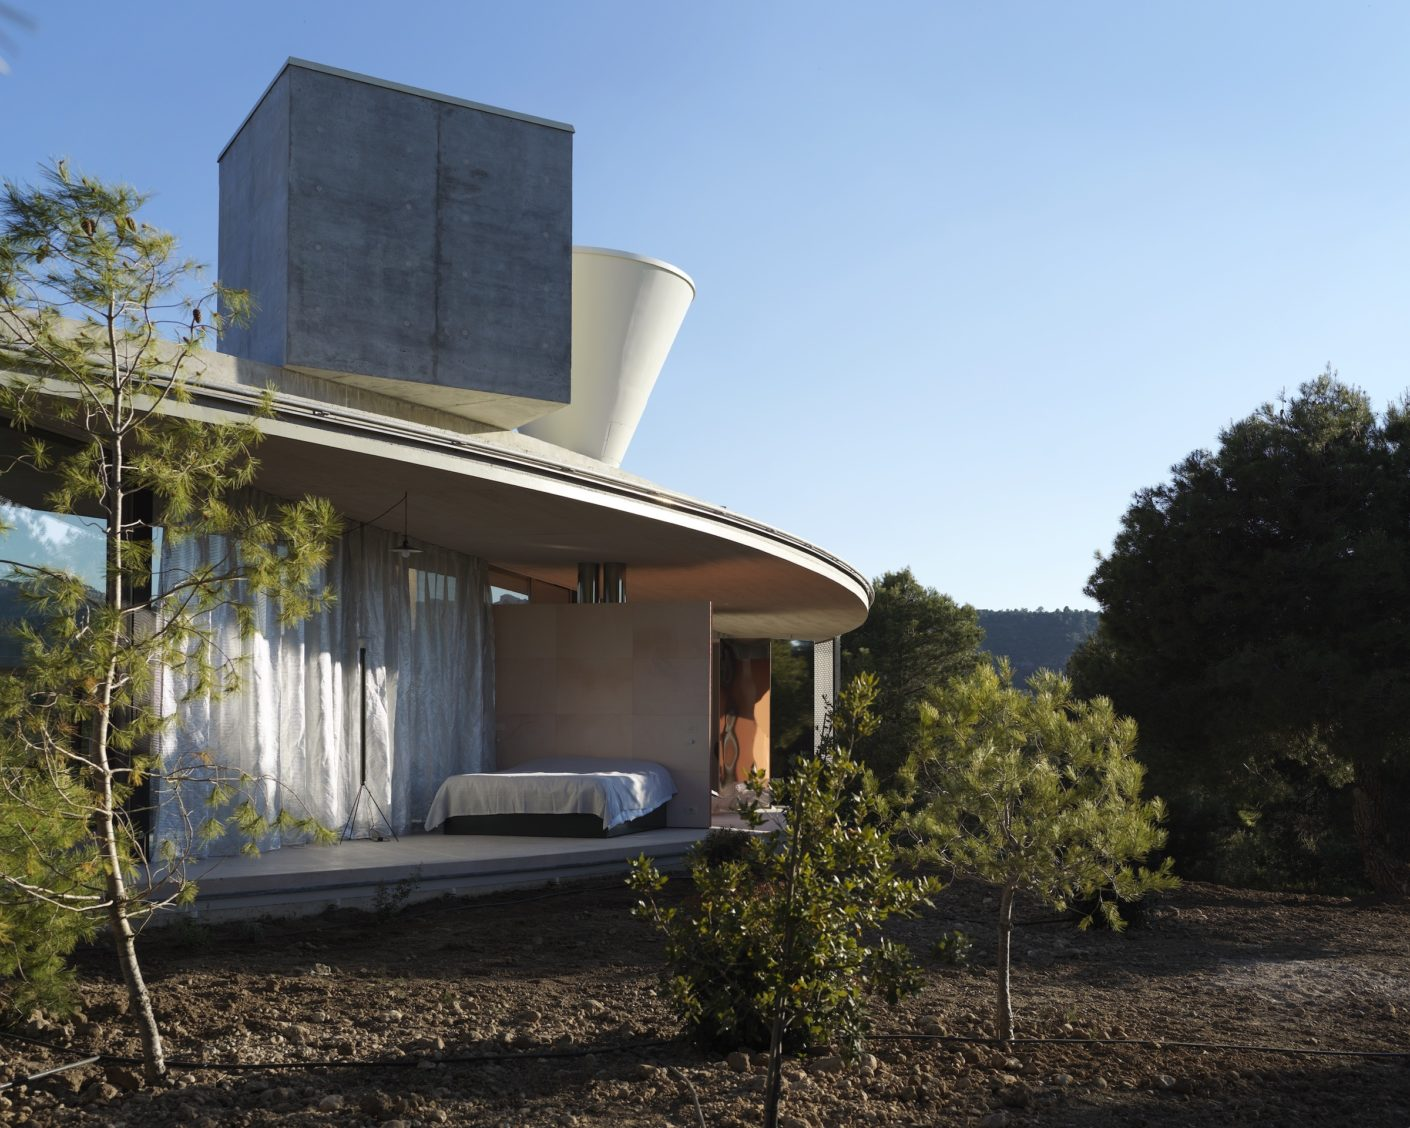 Christian bourdais interview on his solo houses project